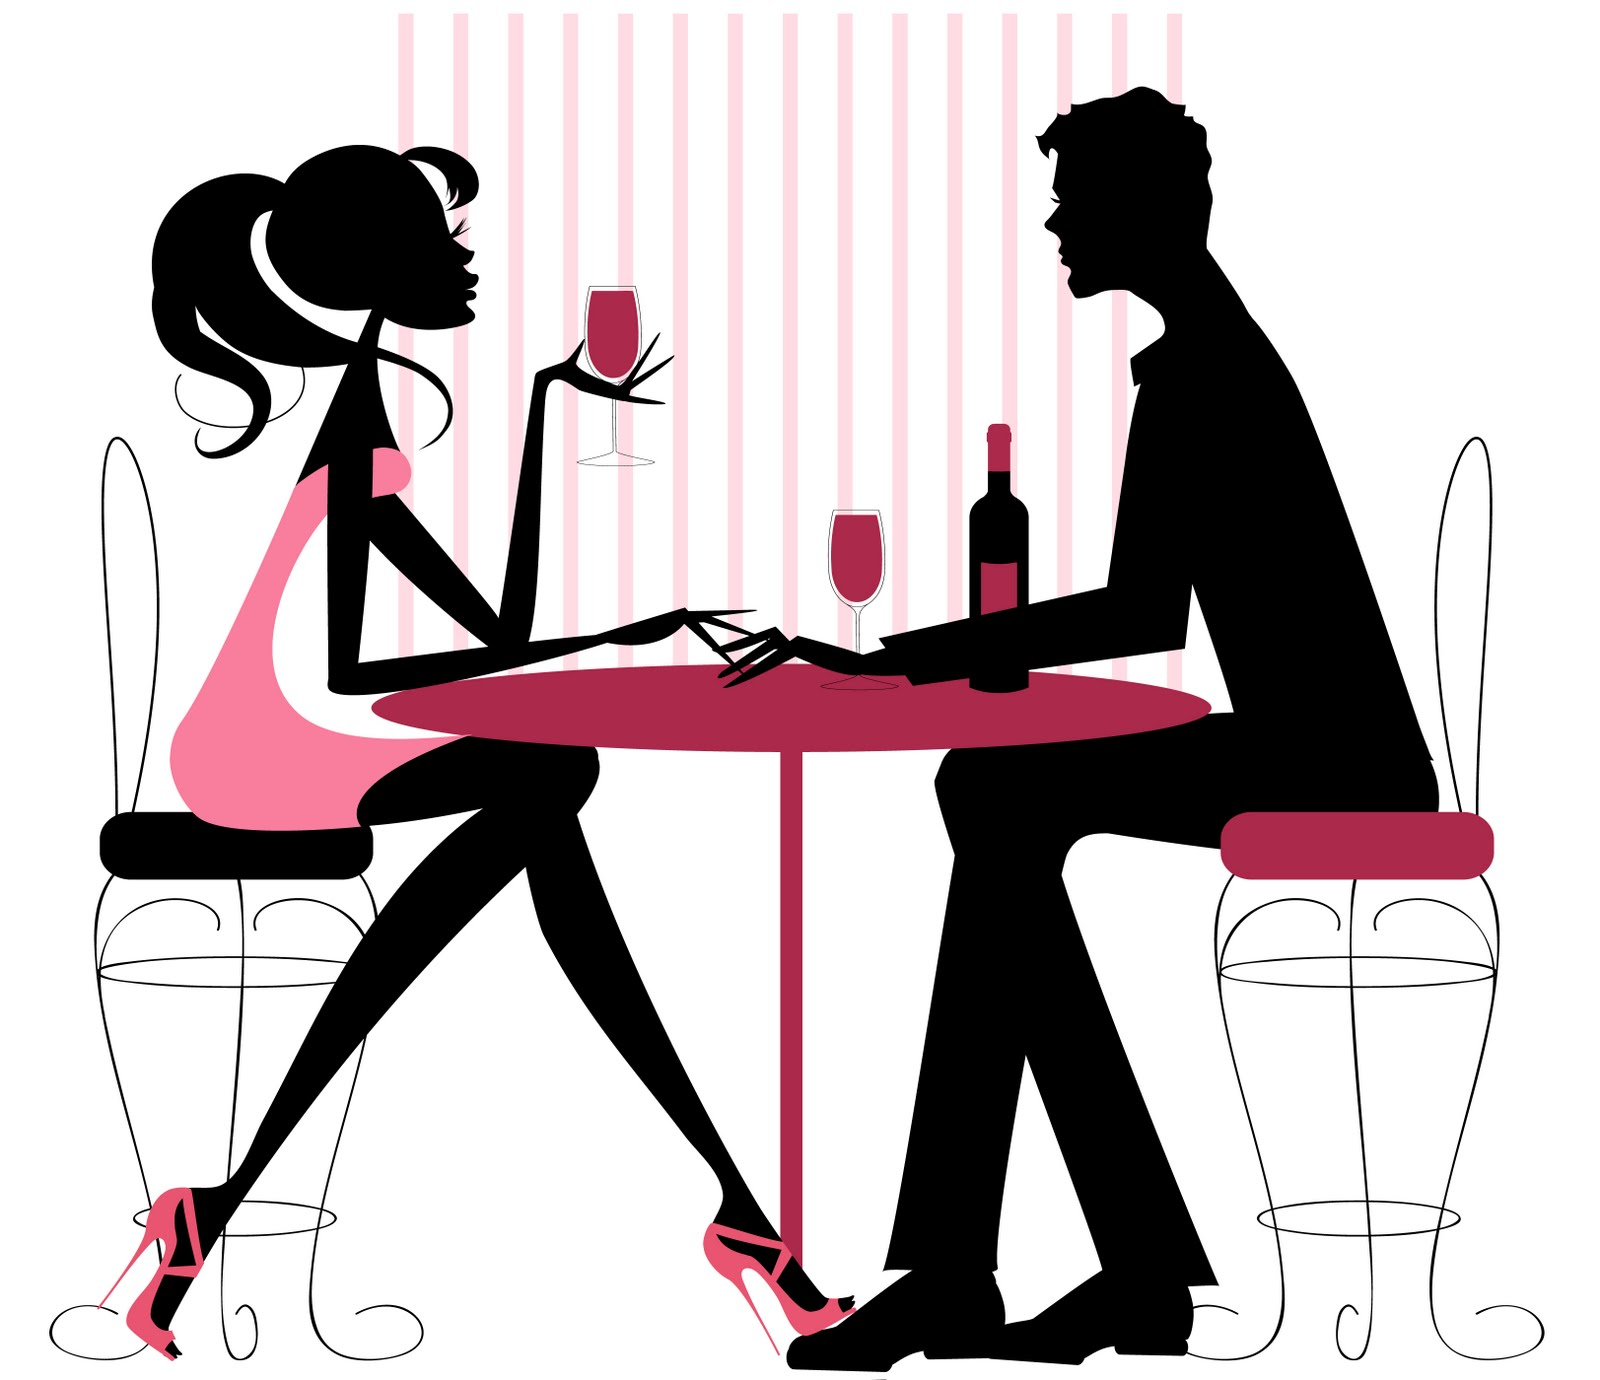 Diner clipart group dating. Silhouette brunch menu at